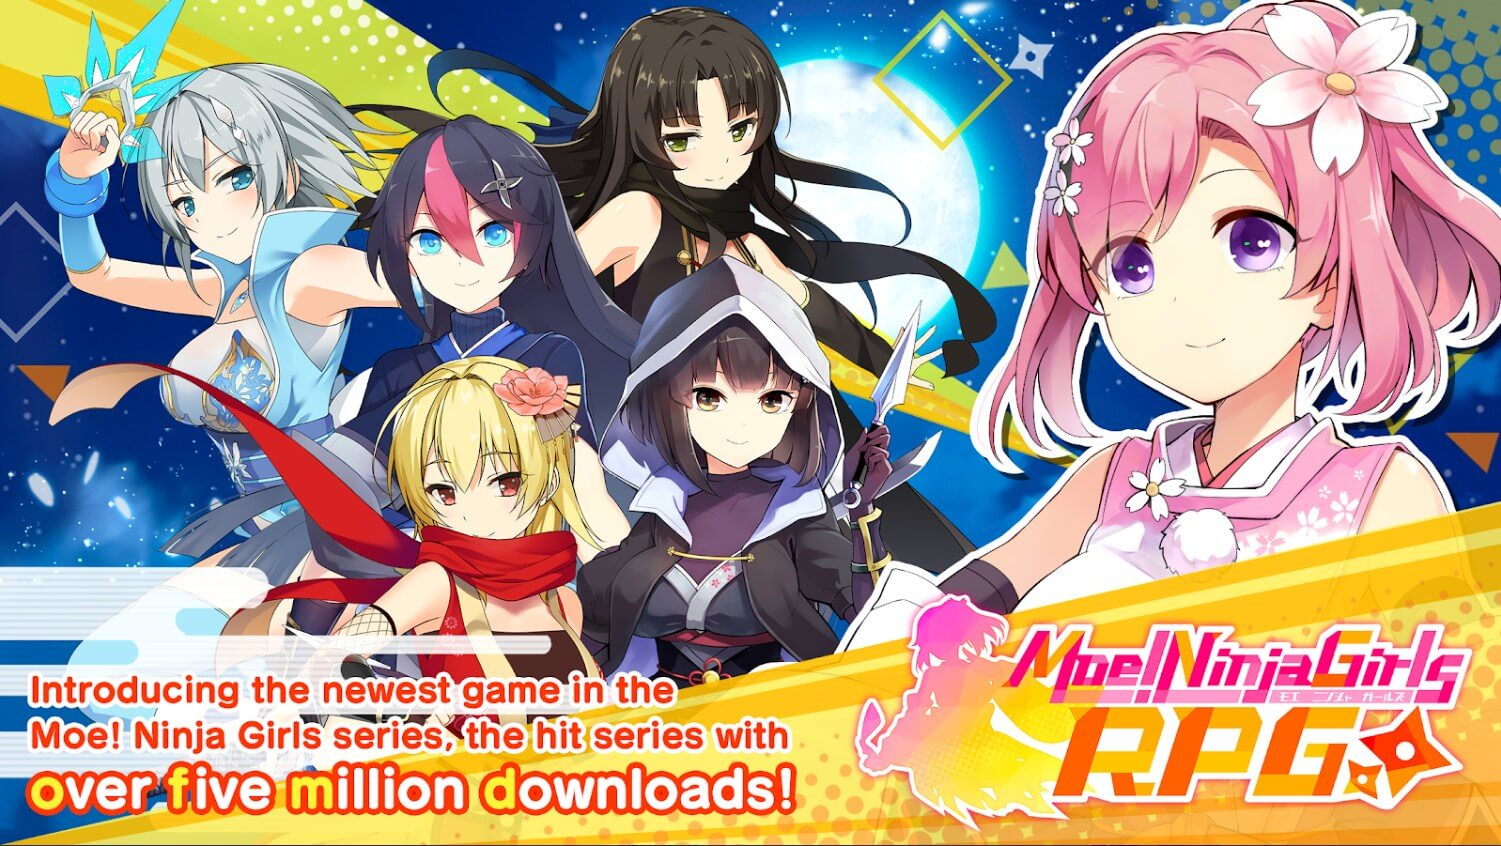 Moe! Ninja Girls RPG: SHINOBI - Global Launch